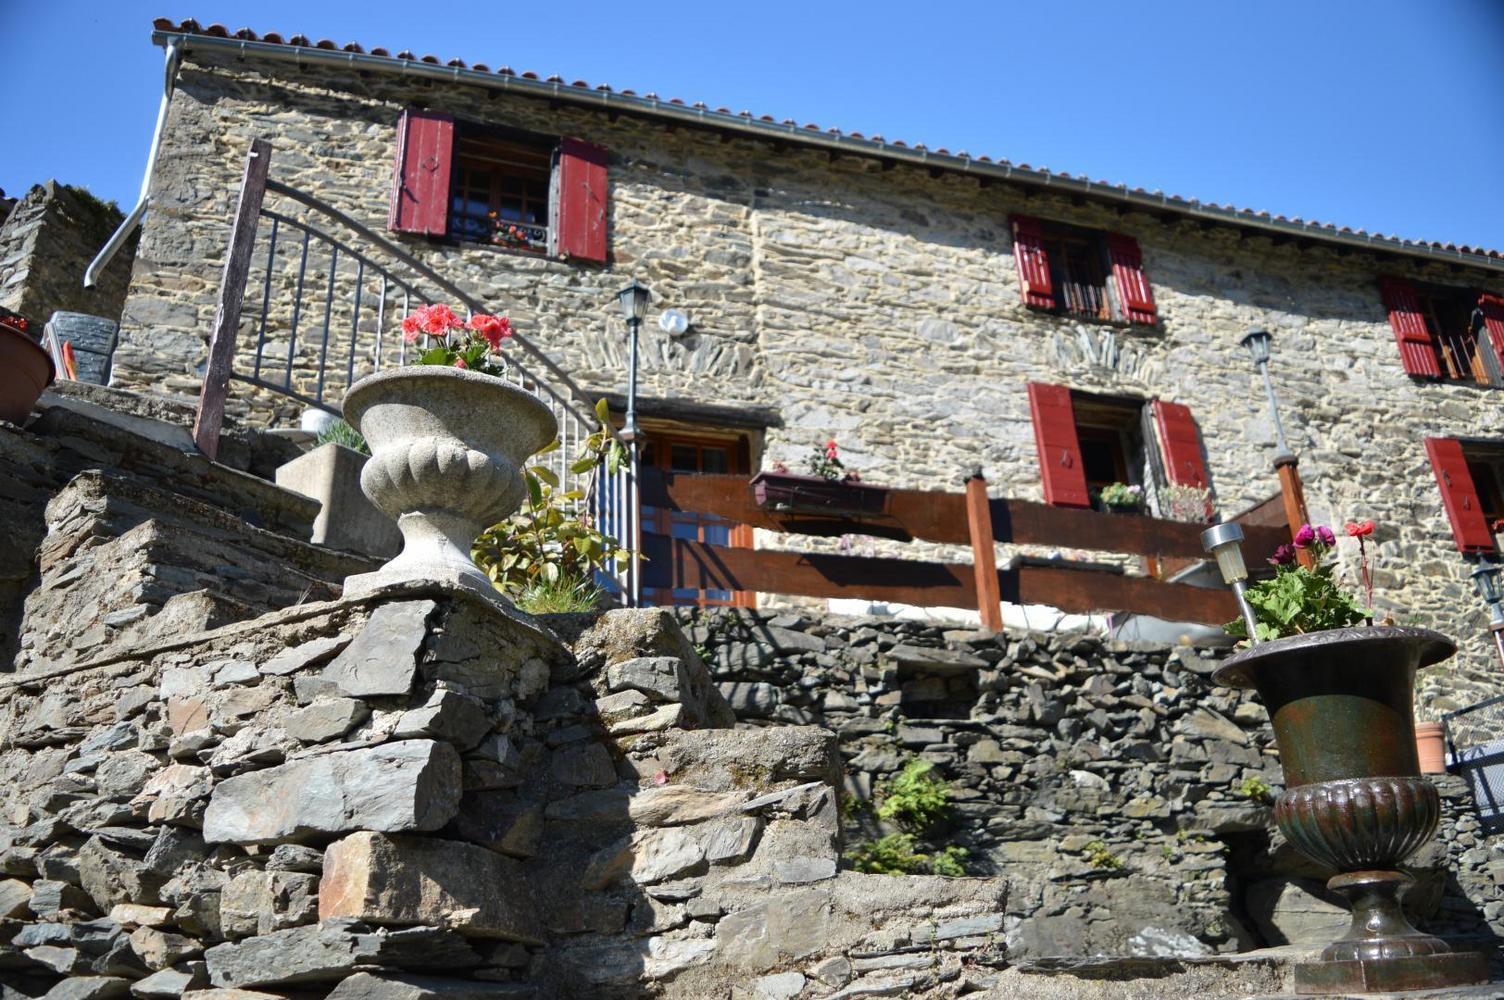 Le Castelet, Aude - photo #3